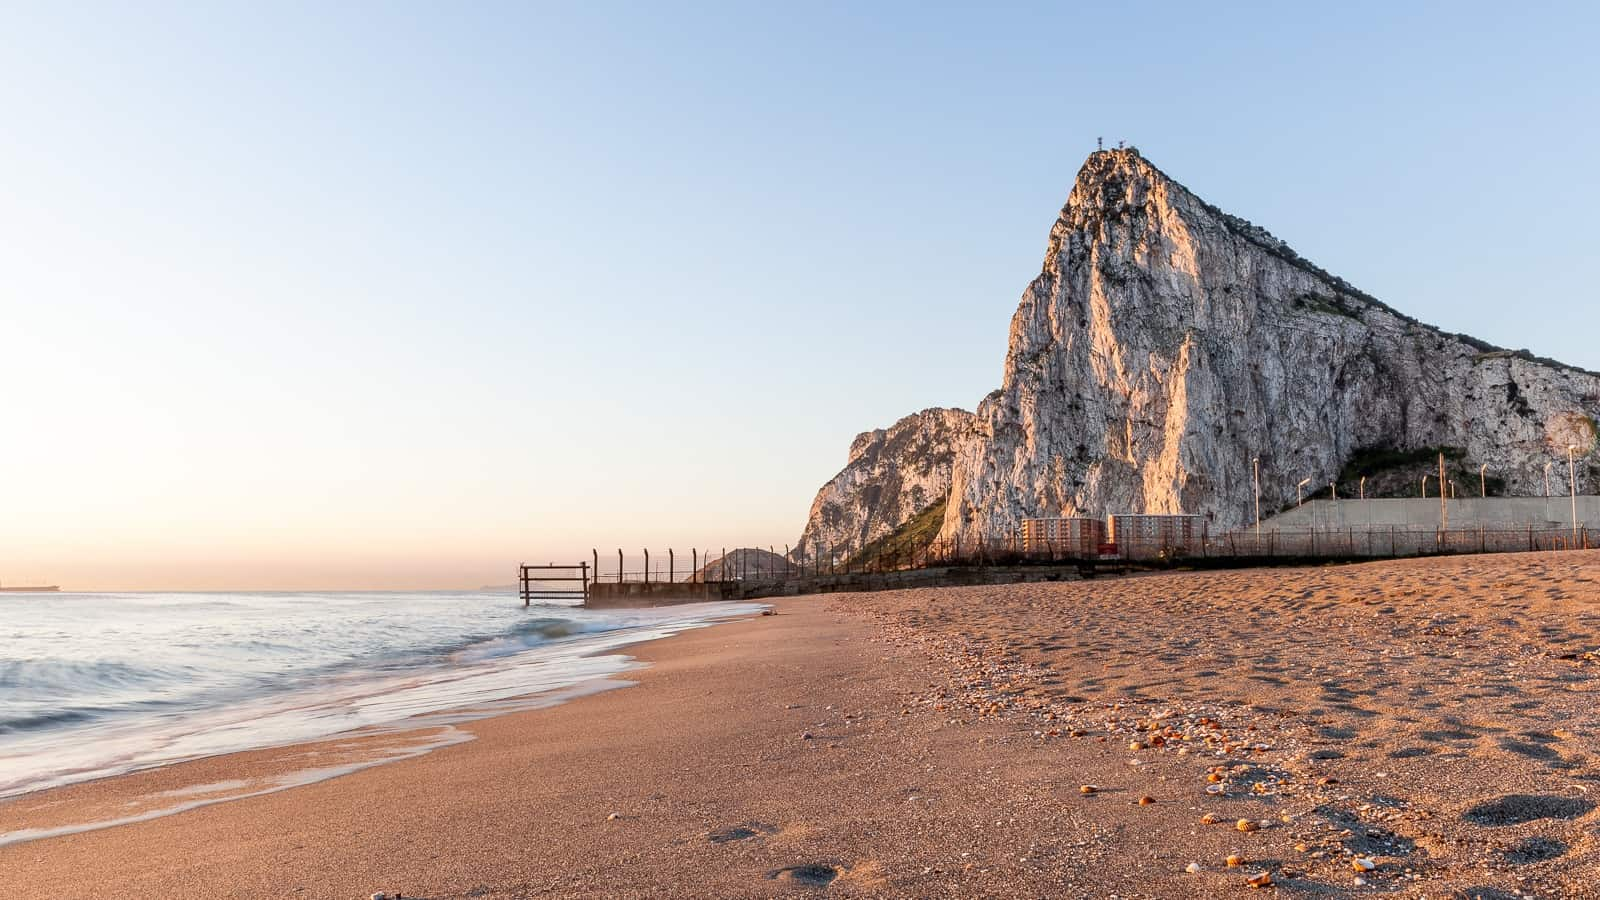 Organised tours of the Rock of Gibraltar can be expensive so we set about finding the cheapest way to see the sights of Gibraltar. It's cheap and easy.